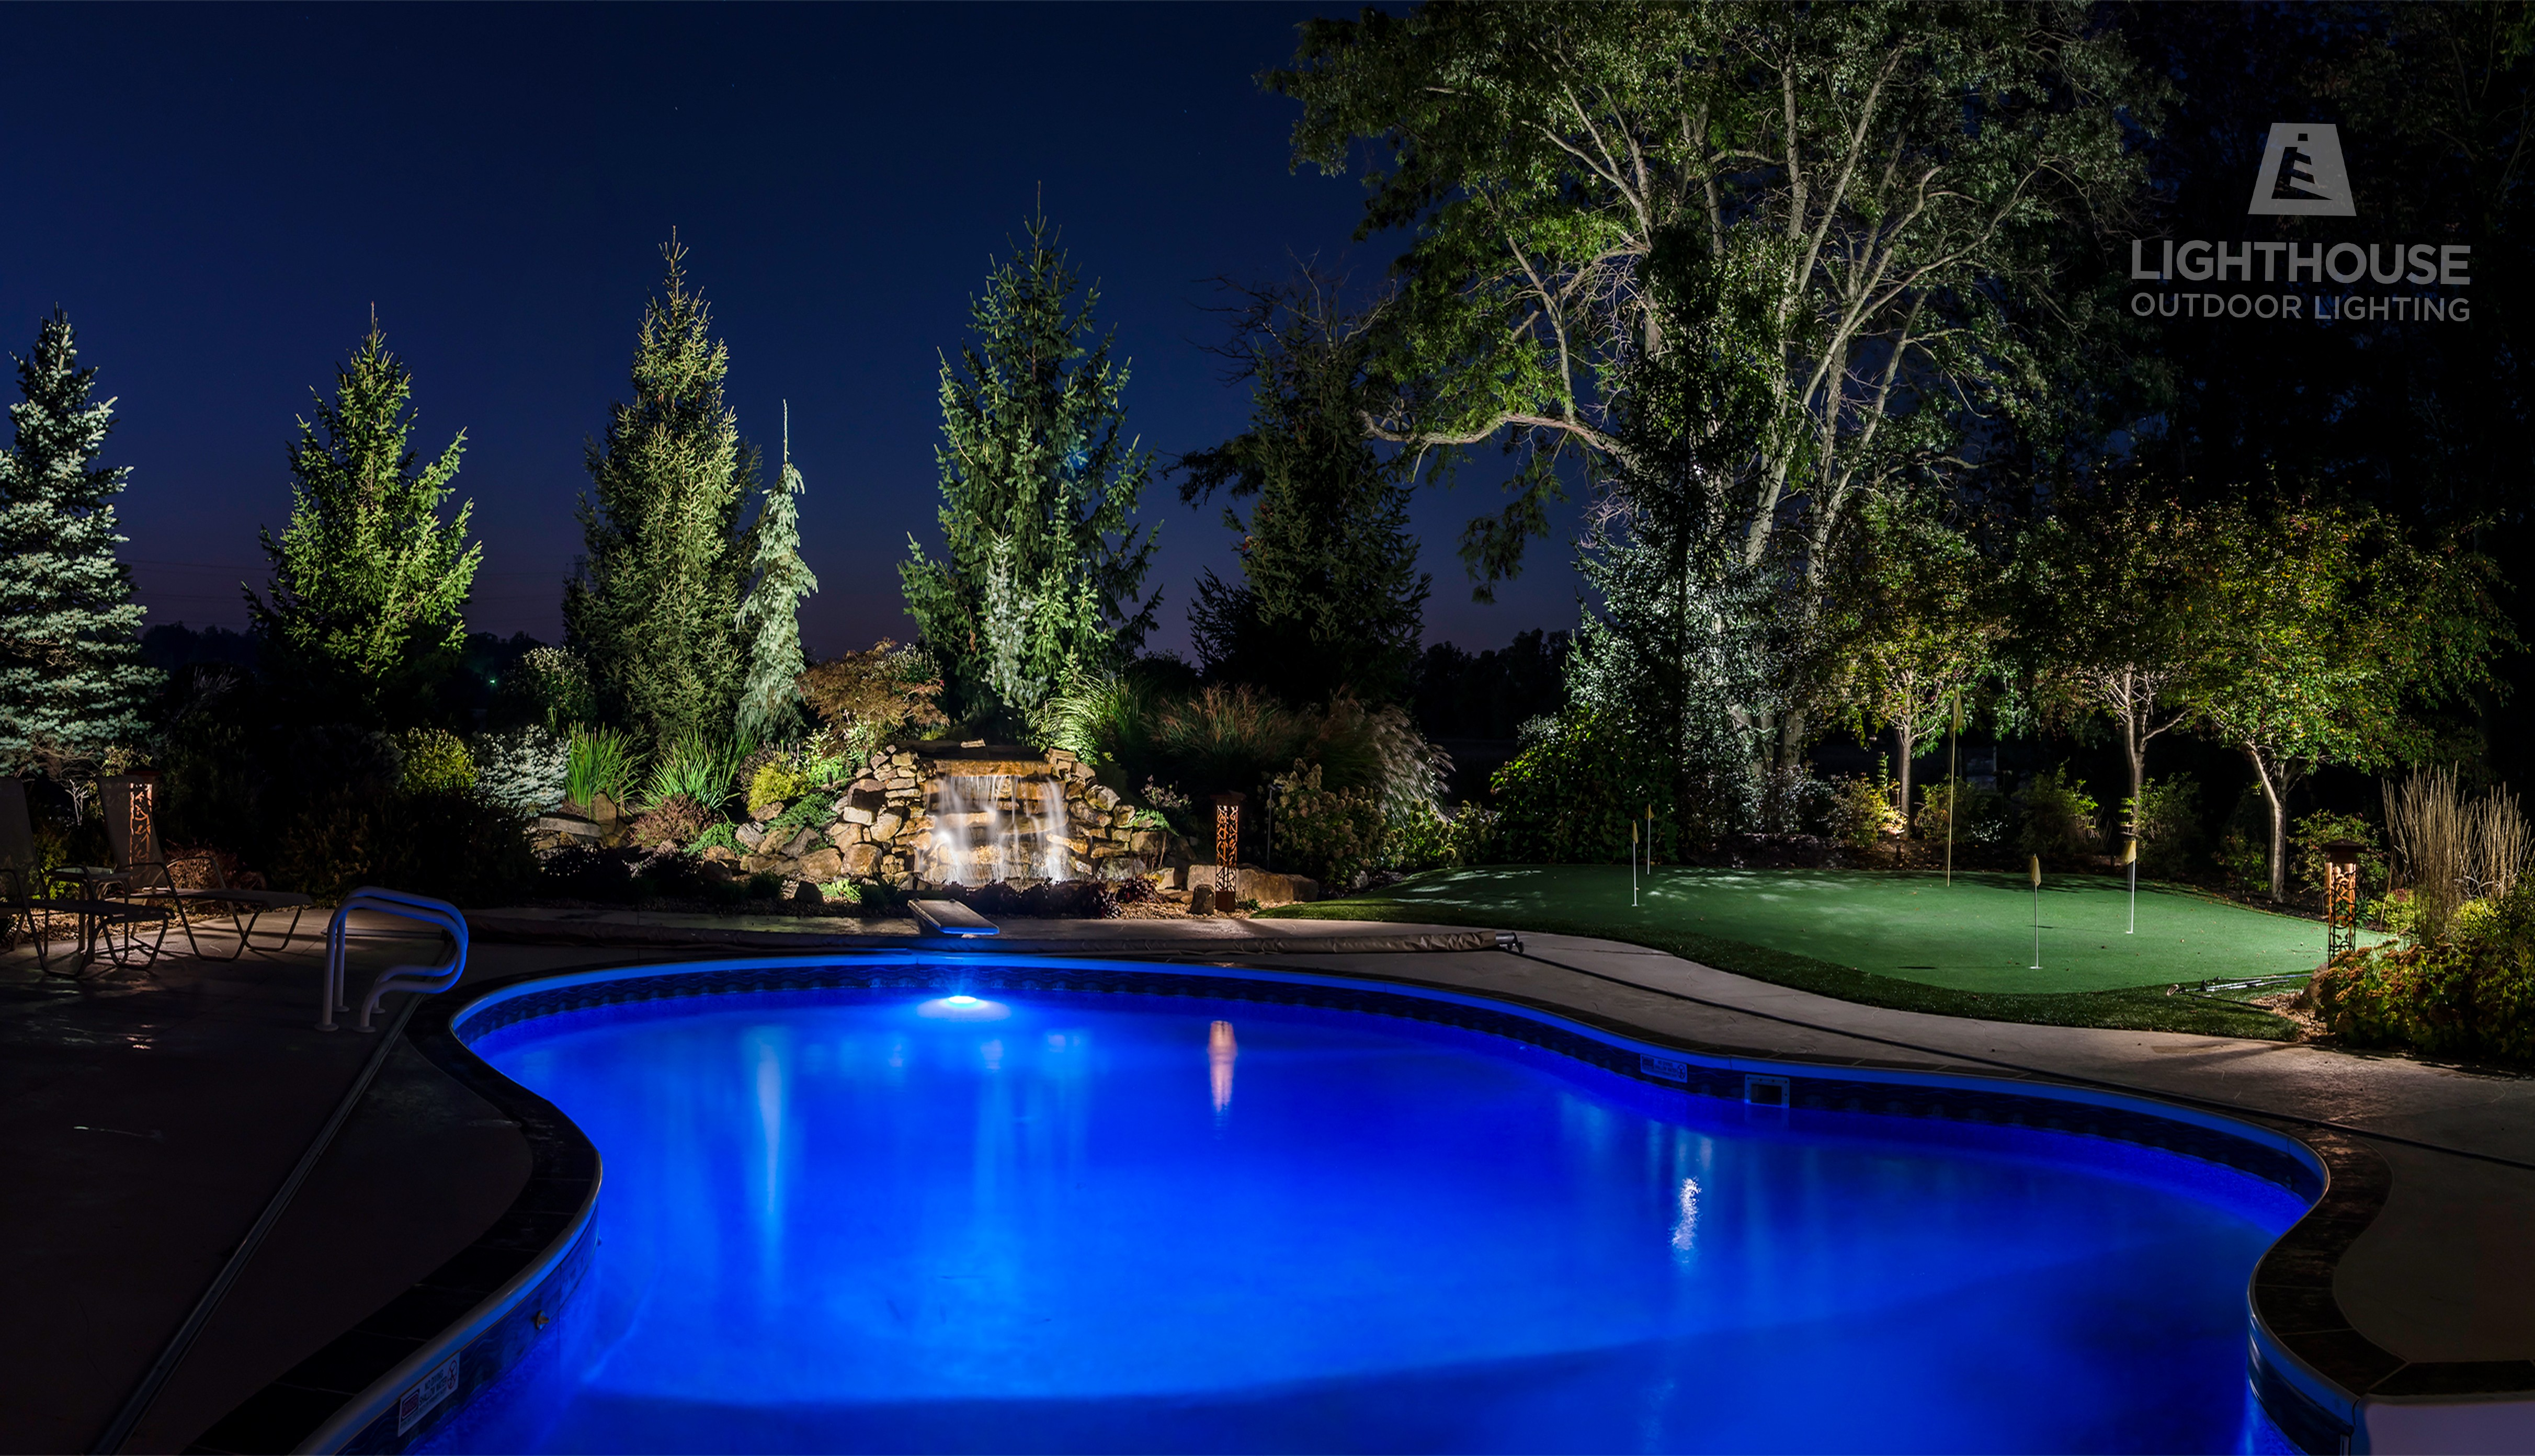 Lighthouse Outdoor Lighting Of